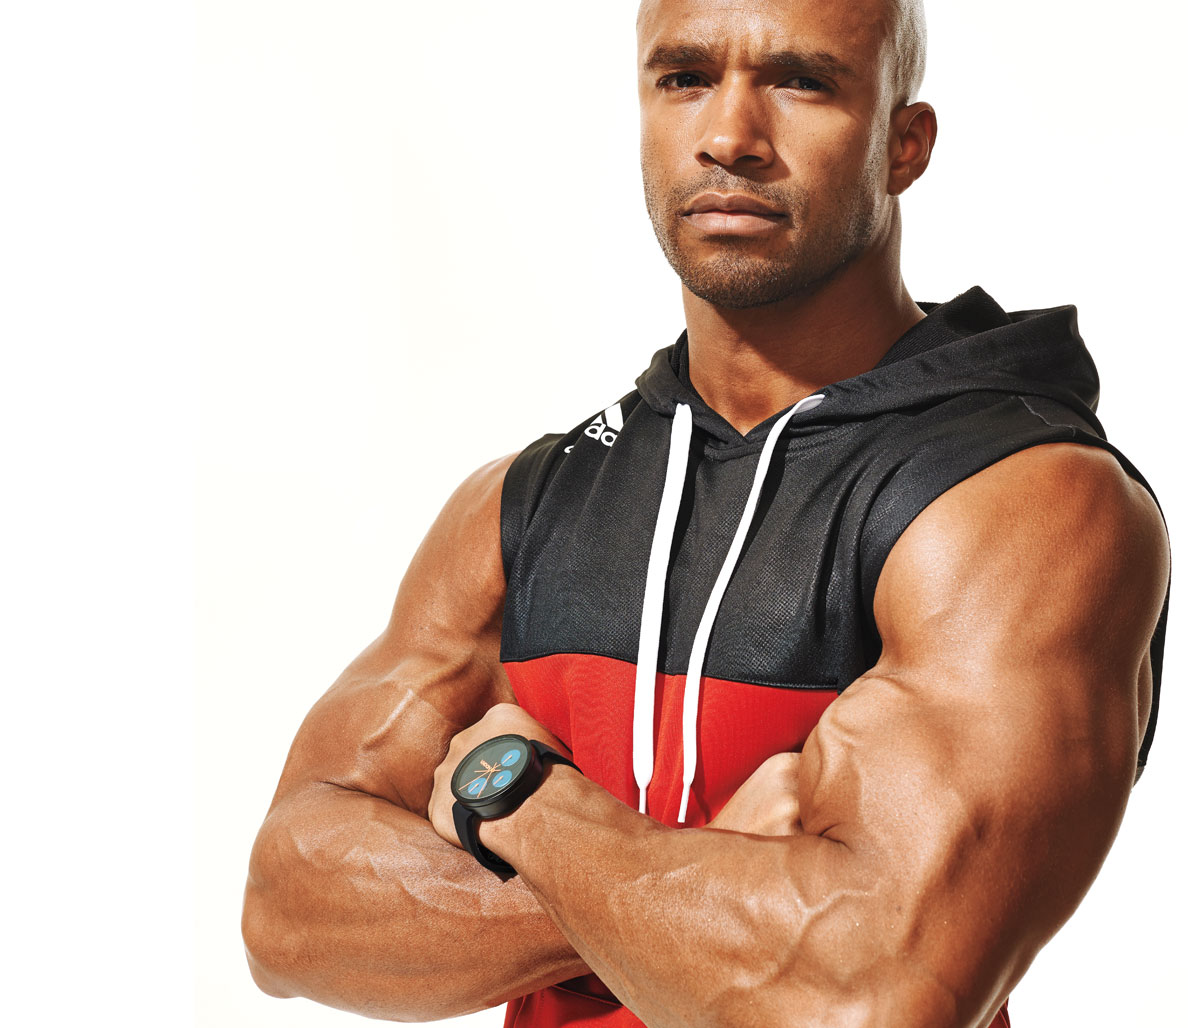 Get big arms with triceps and biceps exercises 1 12 malvernweather Gallery